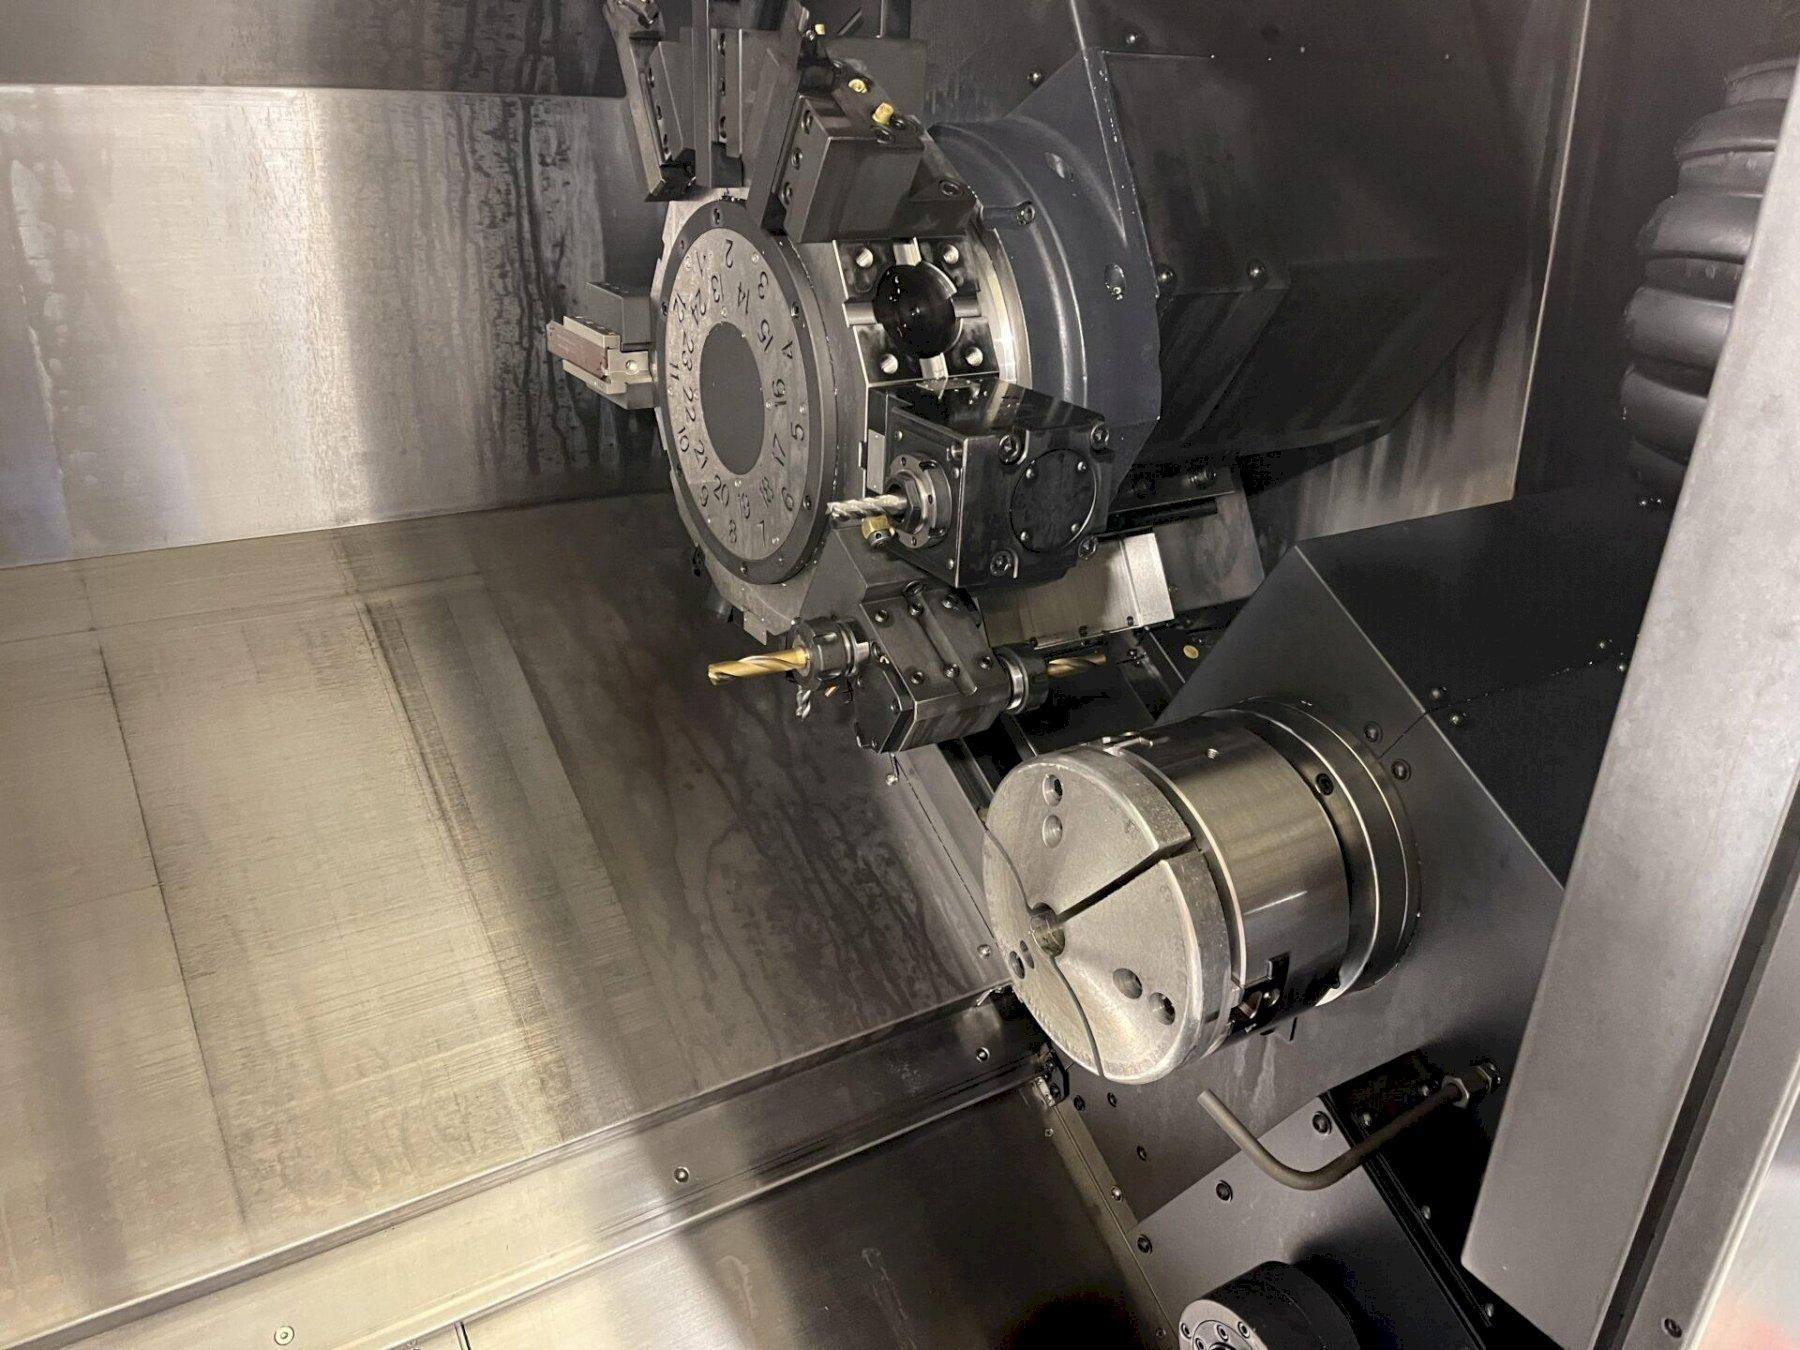 Doosan Puma 2600SY II CNC Lathe 2017 with: Fanuc i Series CNC Control, Live Tooling, Sub Spindle, Auto Tool Presetter, Chip Auger, and Hennig Chip Conveyor.